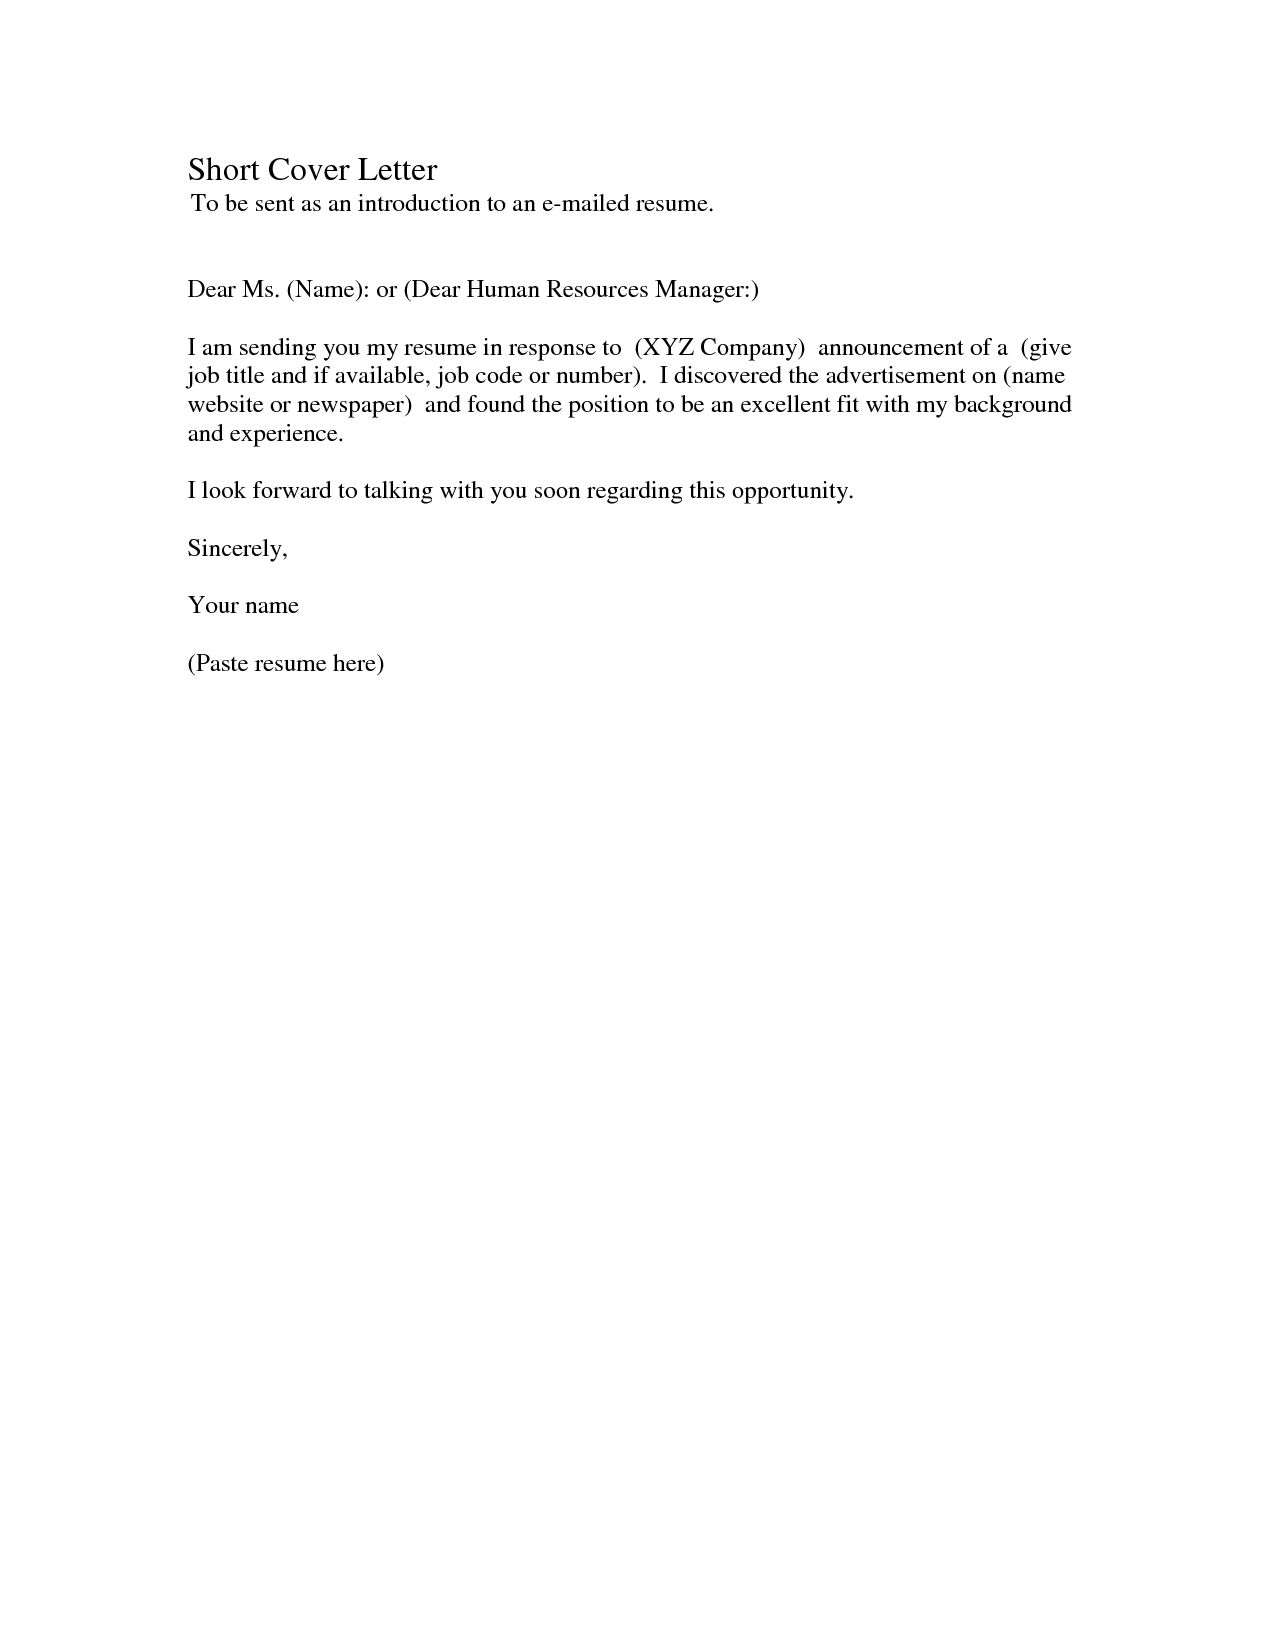 example of cover letter for job template seeabruzzocover letter - Cover Letter With Resume